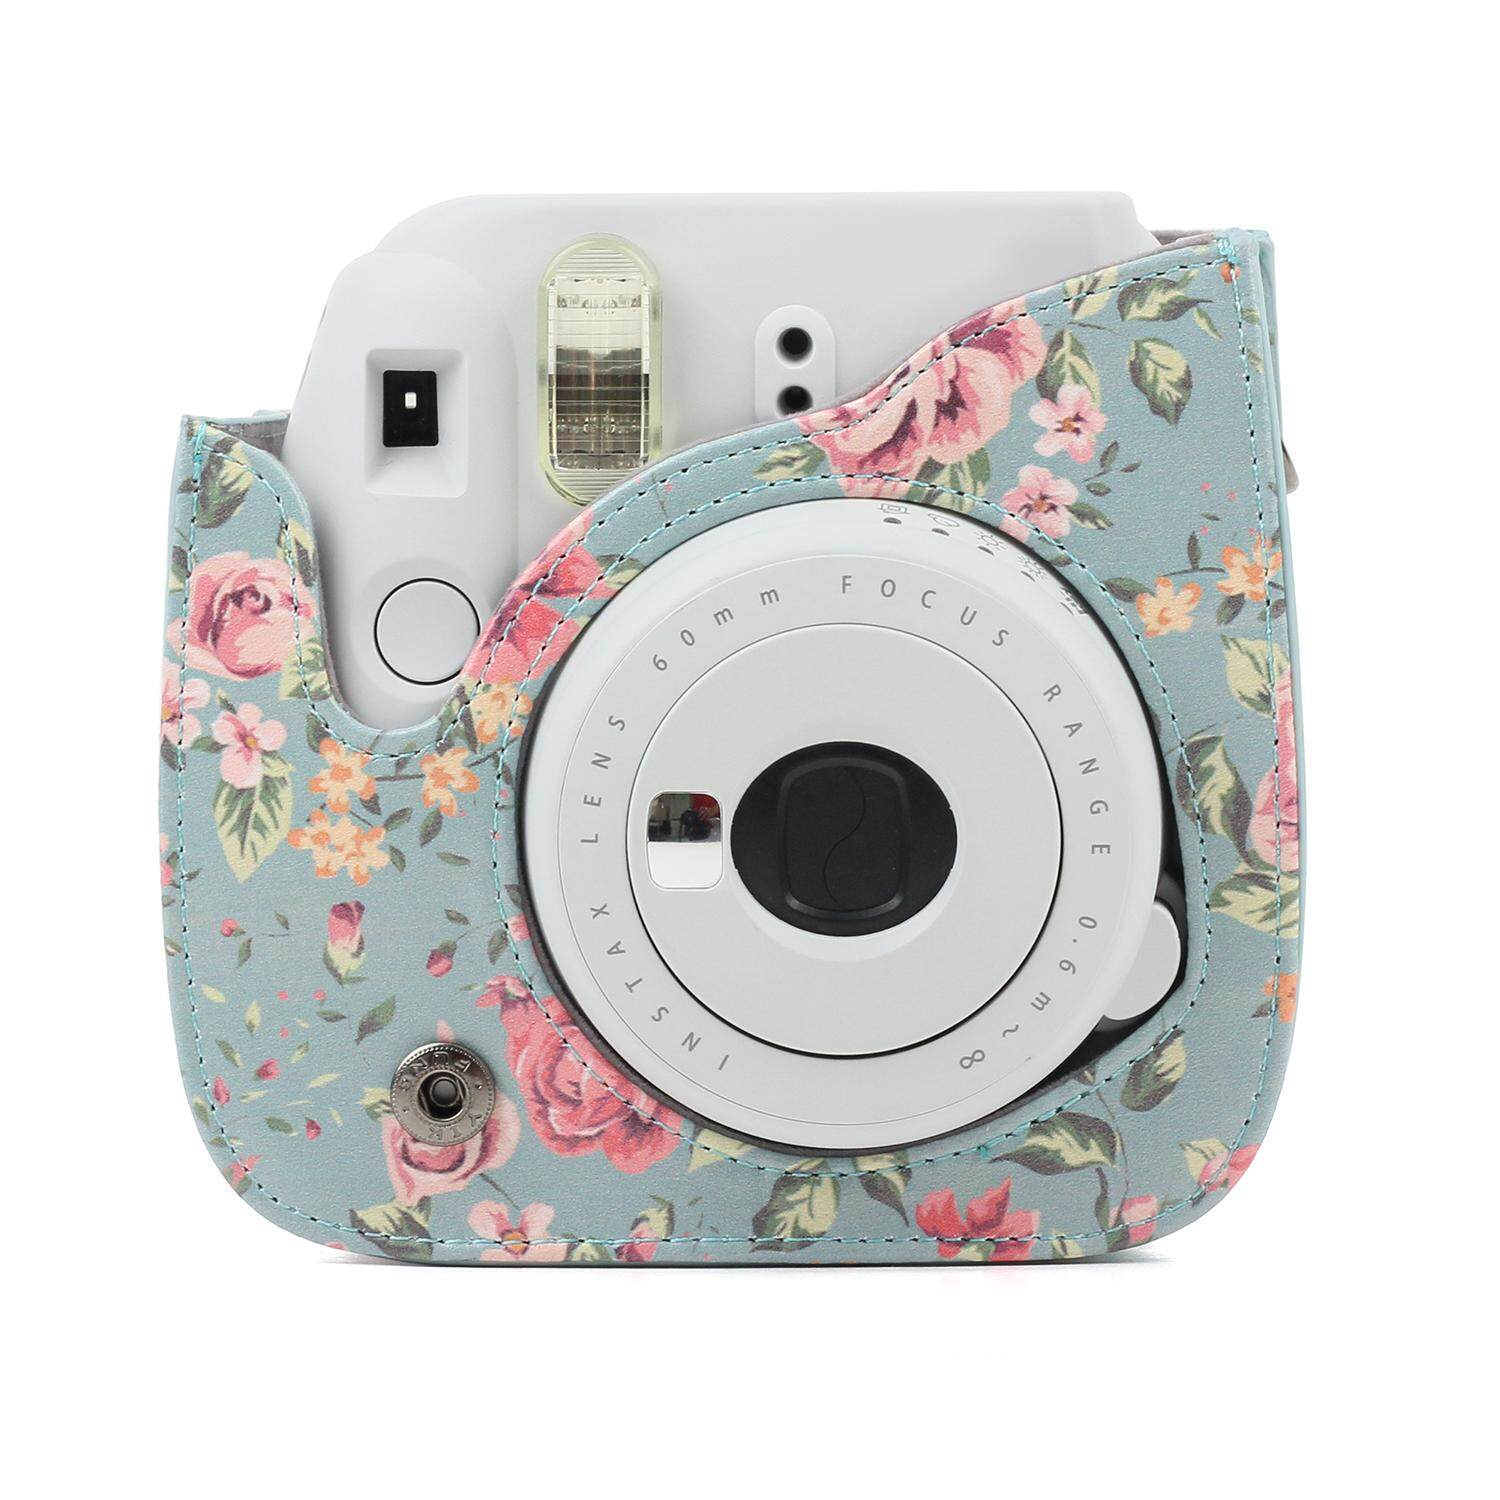 Buy Sell Cheapest Kit Fujifilm Instax Best Quality Product Deals X A5 Free Share Sp 2 Silver Sdhc 16 Gb Tas Leather Brown 8 In 1 Camera Accessories Bag Lens Filter Frame Photo Album Stickers Clips Hemp